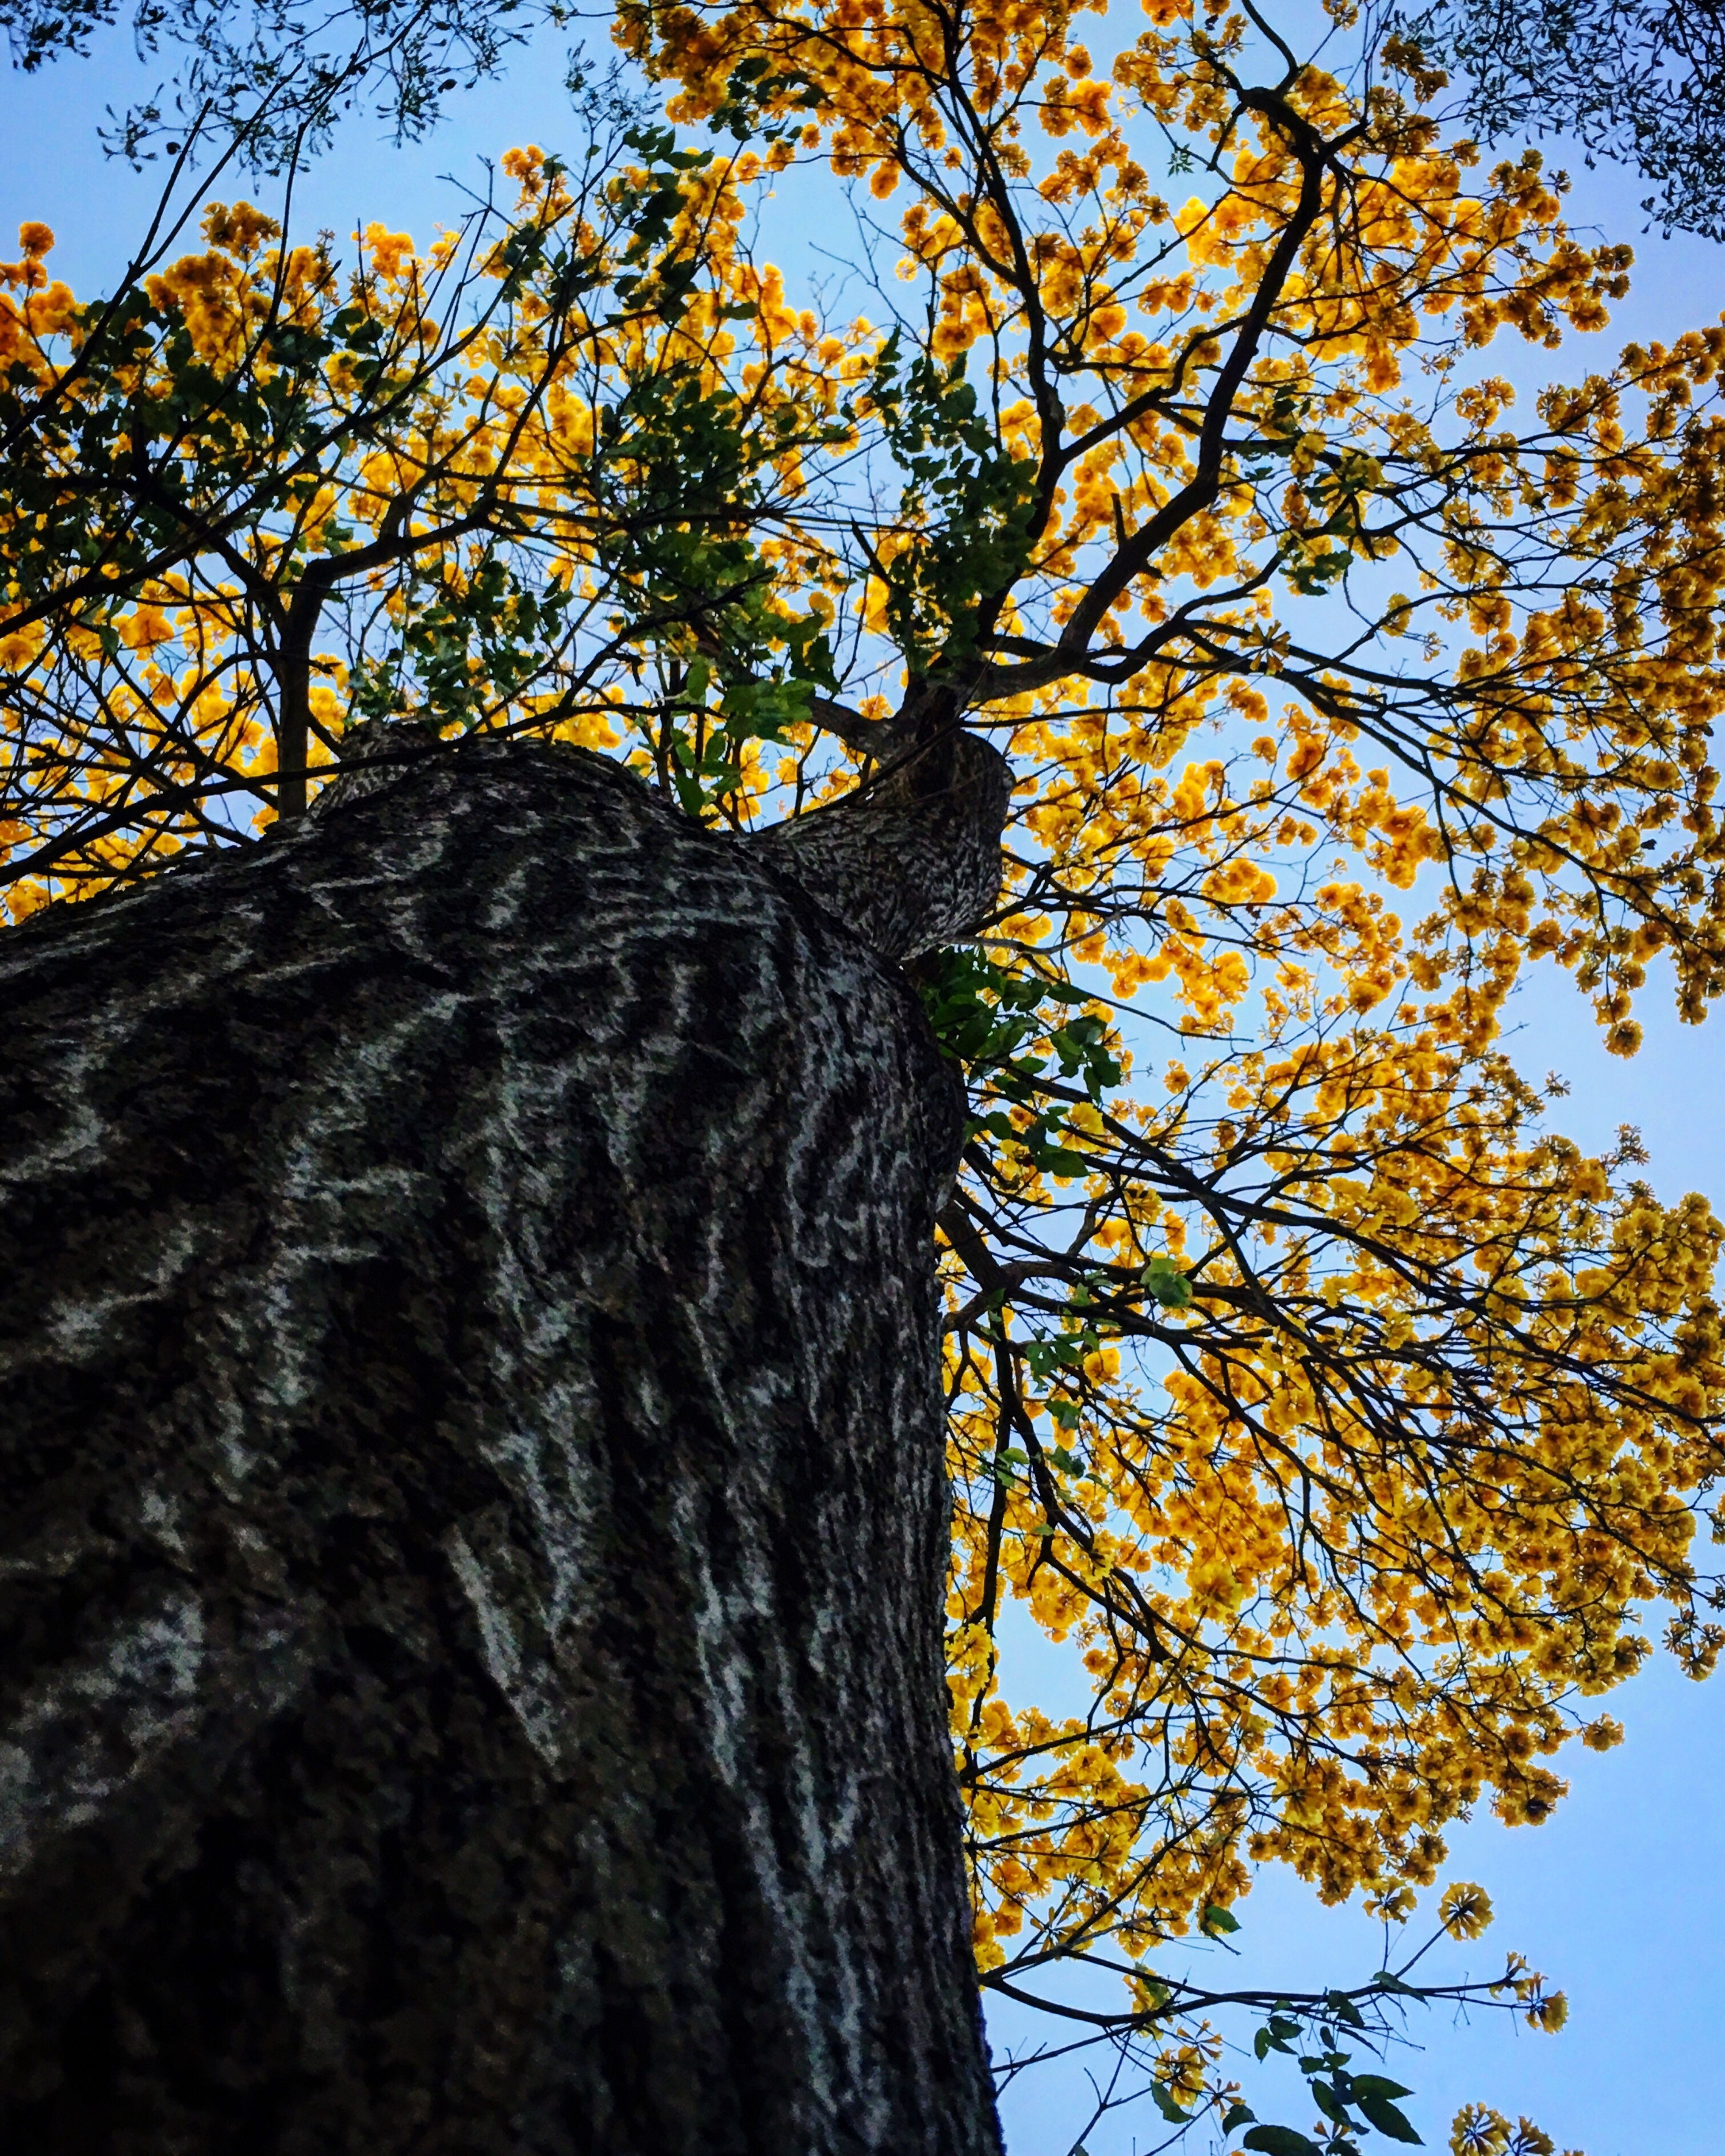 Tree Low Angle View Tree Trunk Nature Branch Growth Beauty In Nature No People Bark Sky Day Outdoors Textured  Close-up Woodpecker Leopard Guayacan Guayaca Tree Guayacan Panama Guayacan Flowers Guayacan Lover Panama Tree Guayacanes